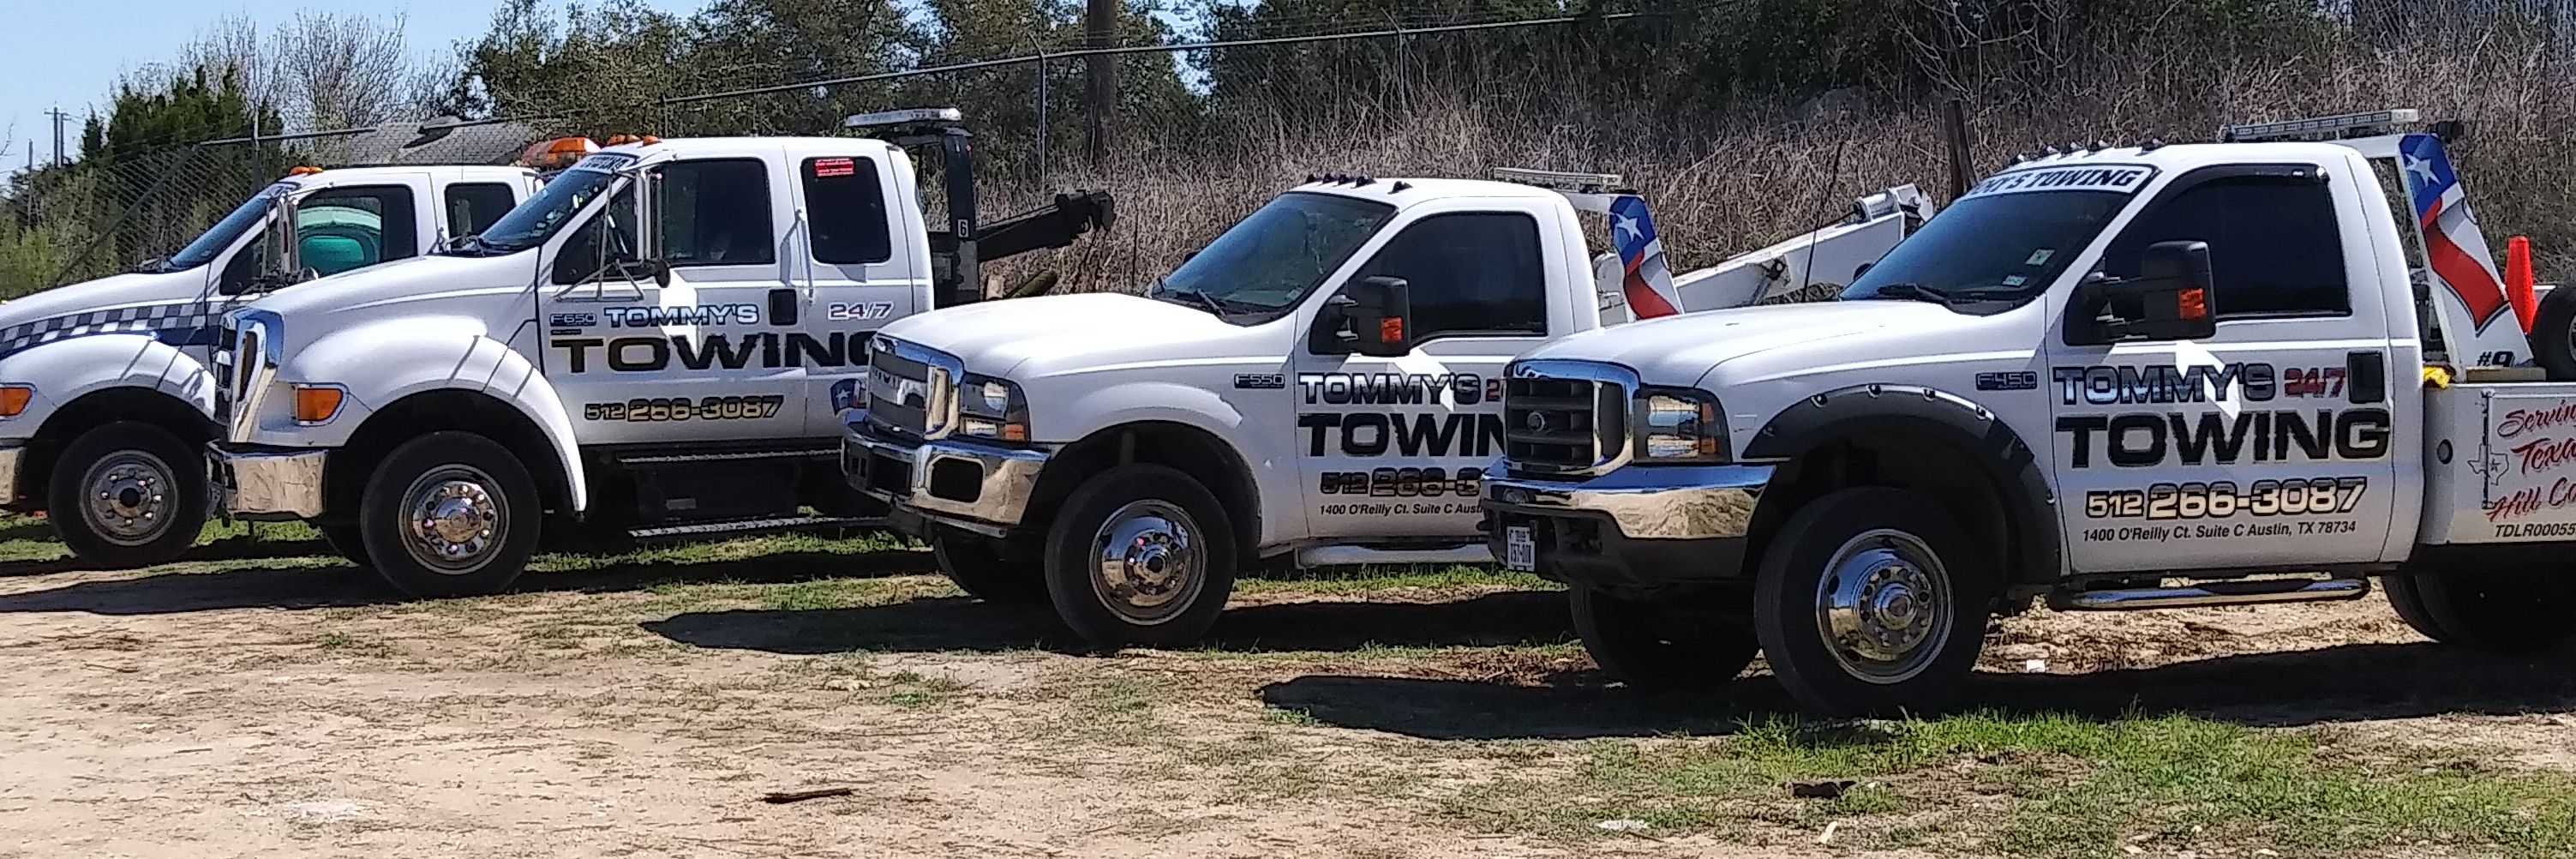 Tommy's Towing Towing.com Profile Banner